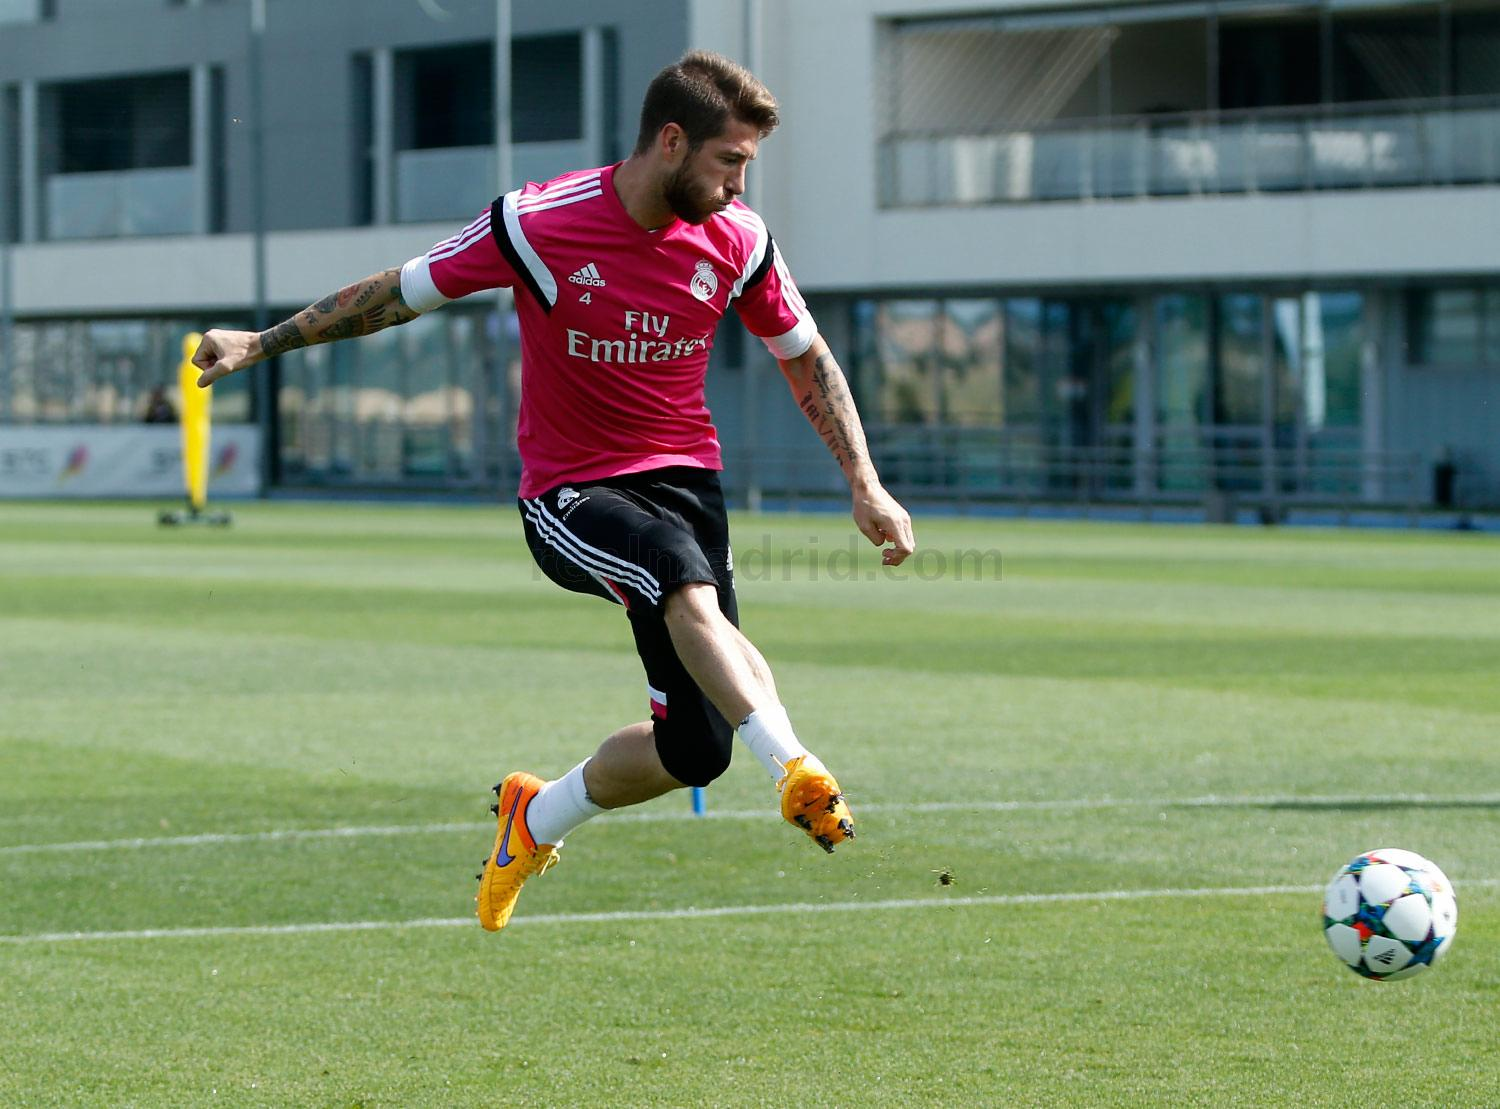 Real Madrid - Entrenamiento del Real Madrid - 11-05-2015